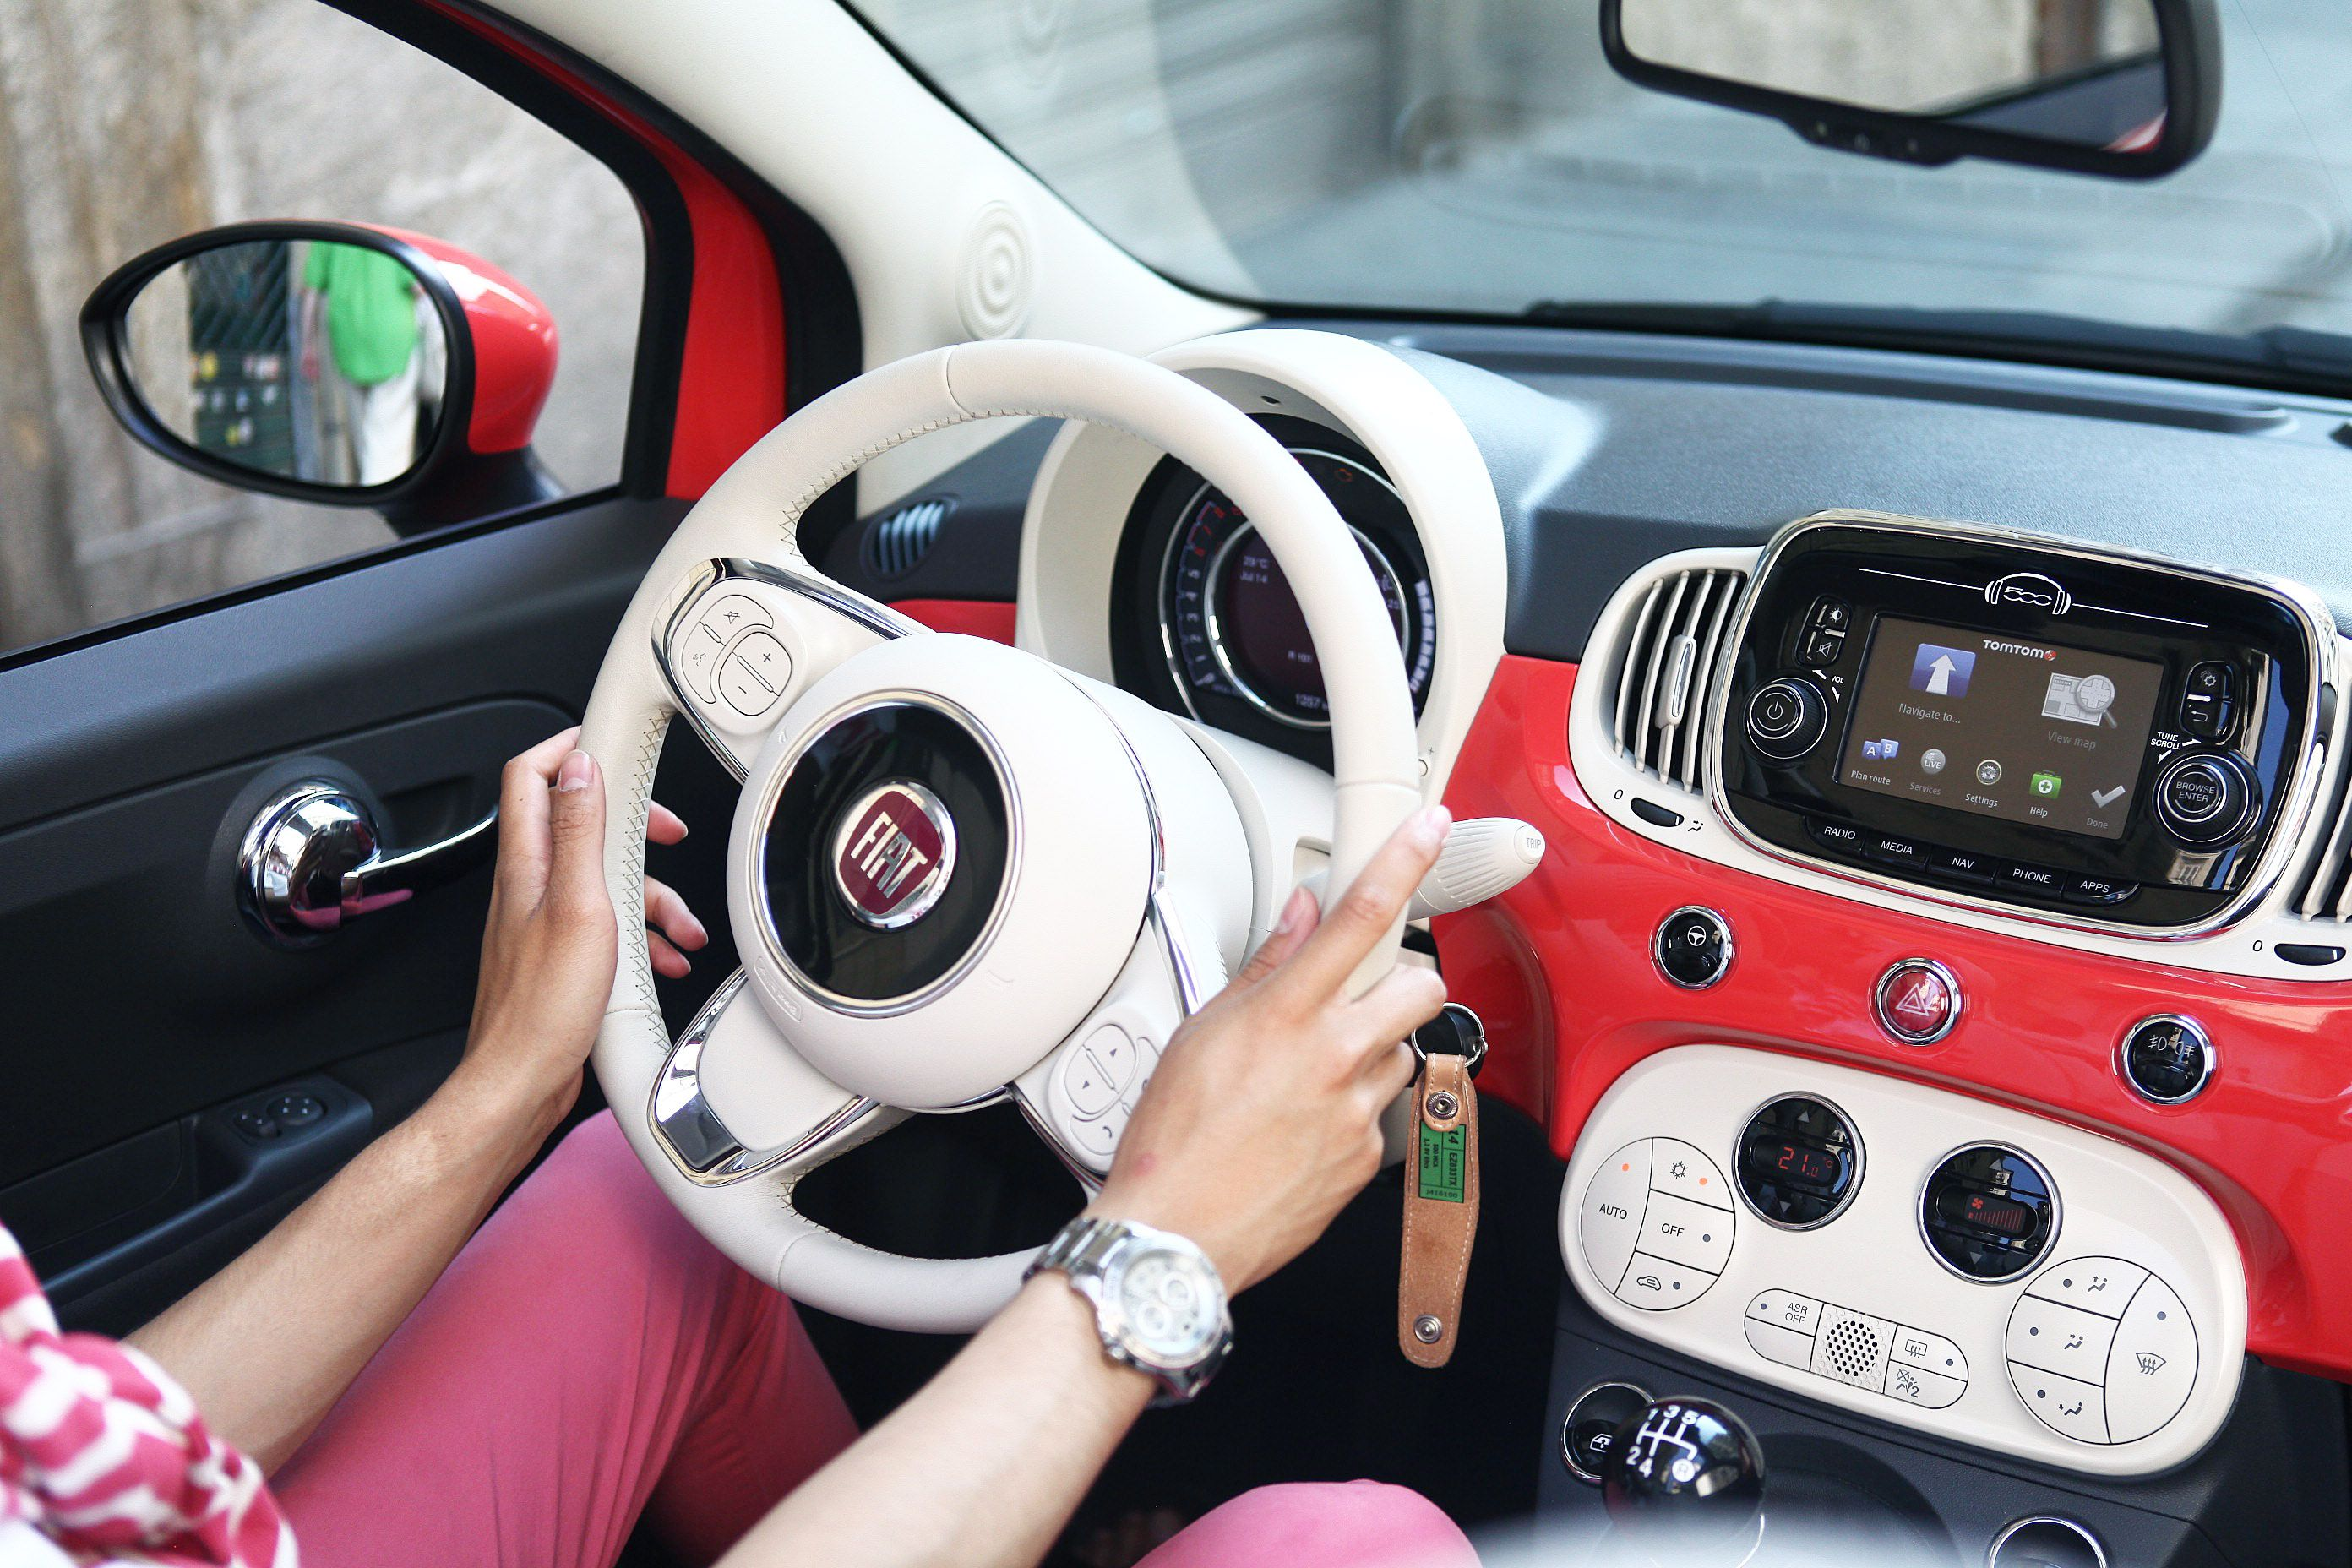 The new fiat 500 convertible coral interior steeling for Fiat 500 interieur